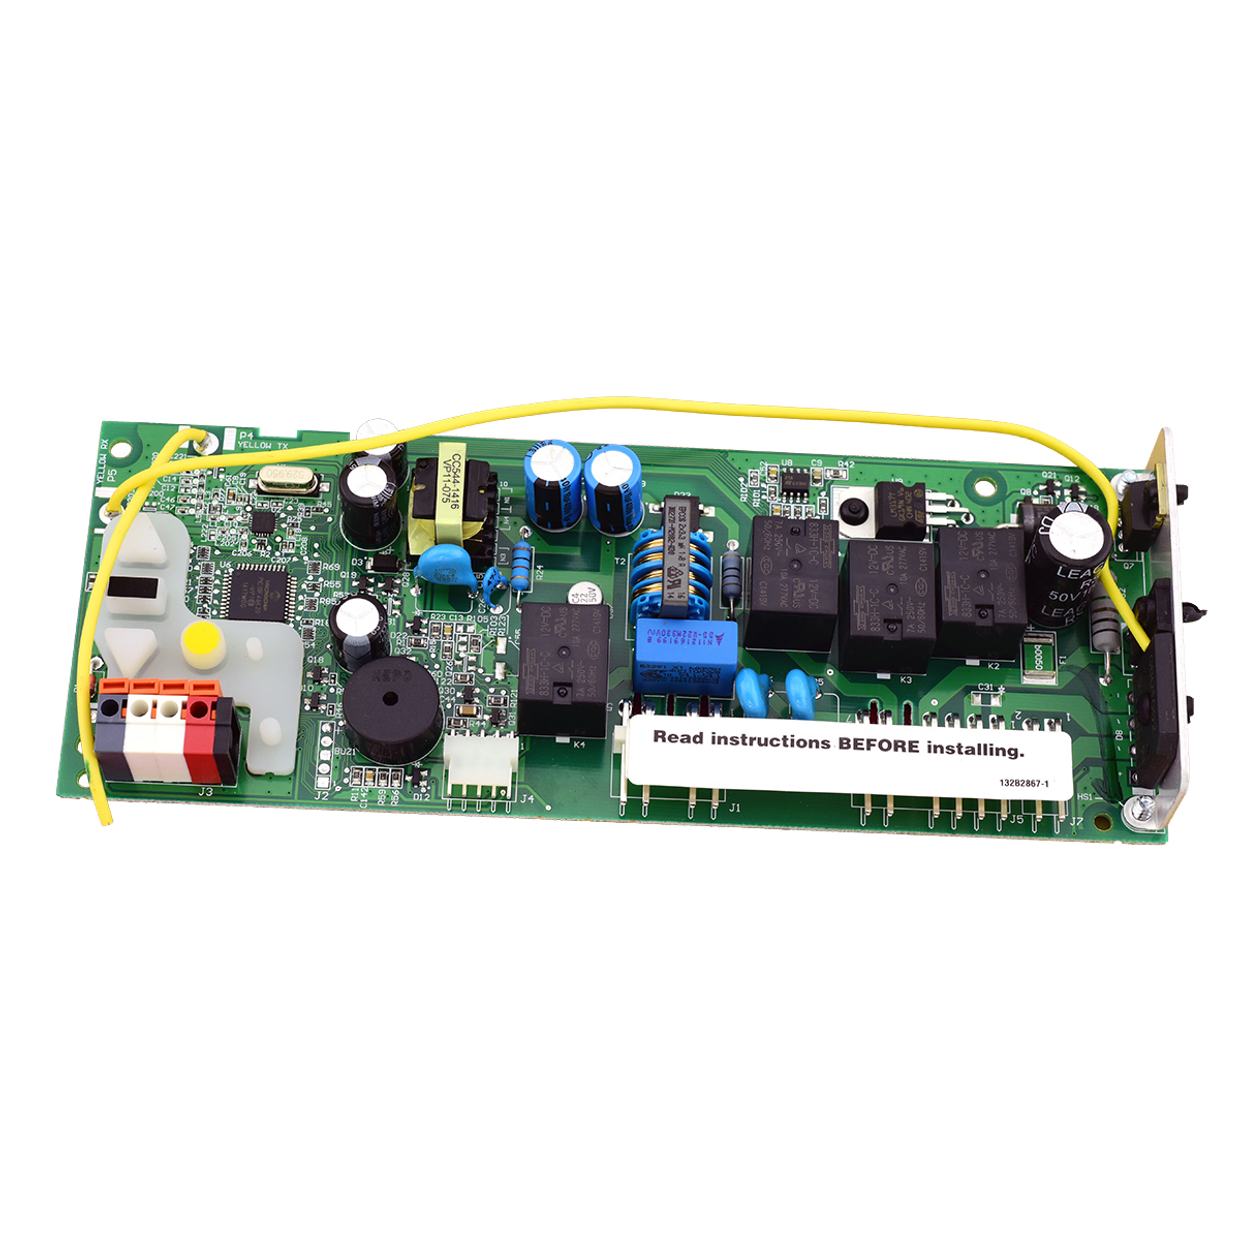 045DCT - Receiver Logic Board, Security+ 2.0